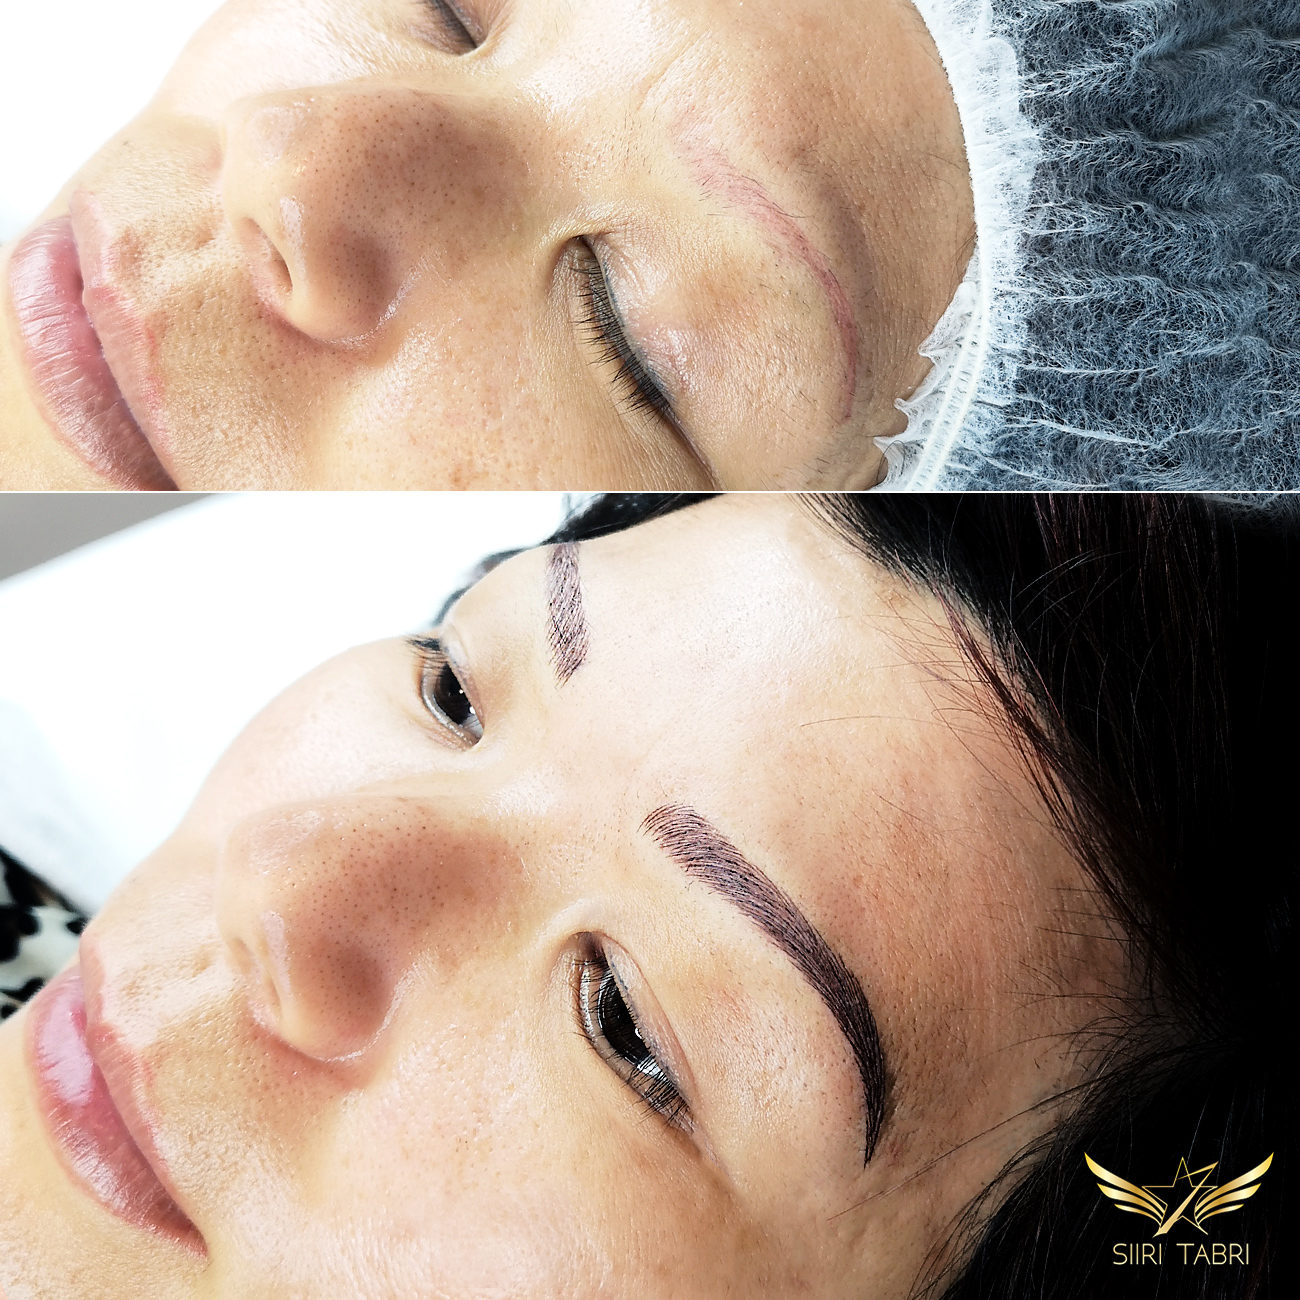 Light microblading. Again, very strange pigmentation turned into natural brow with Light microblading.